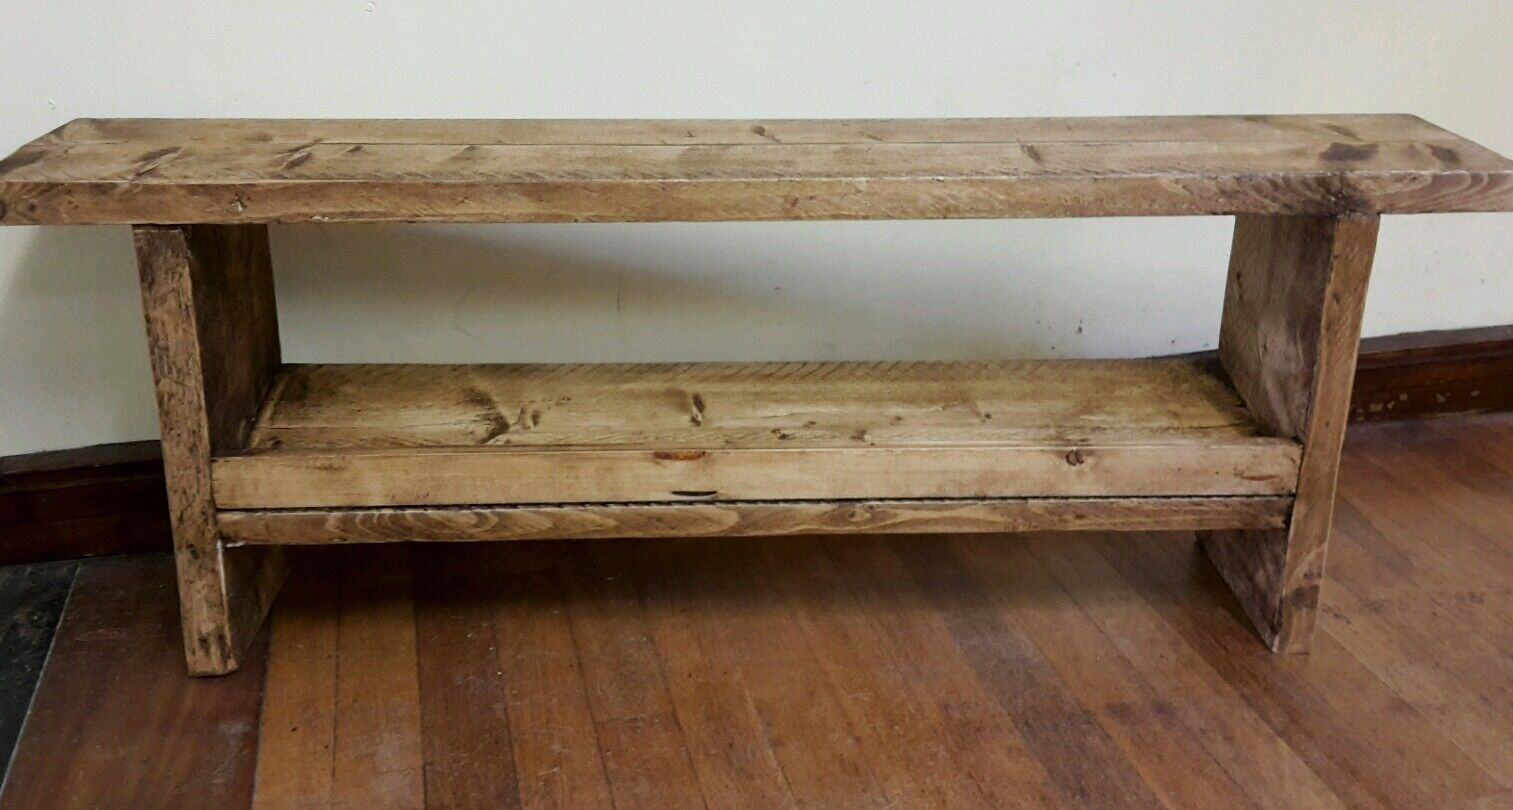 Bespoke Lovely Handmade Rustic Wooden Reclaimed Timber